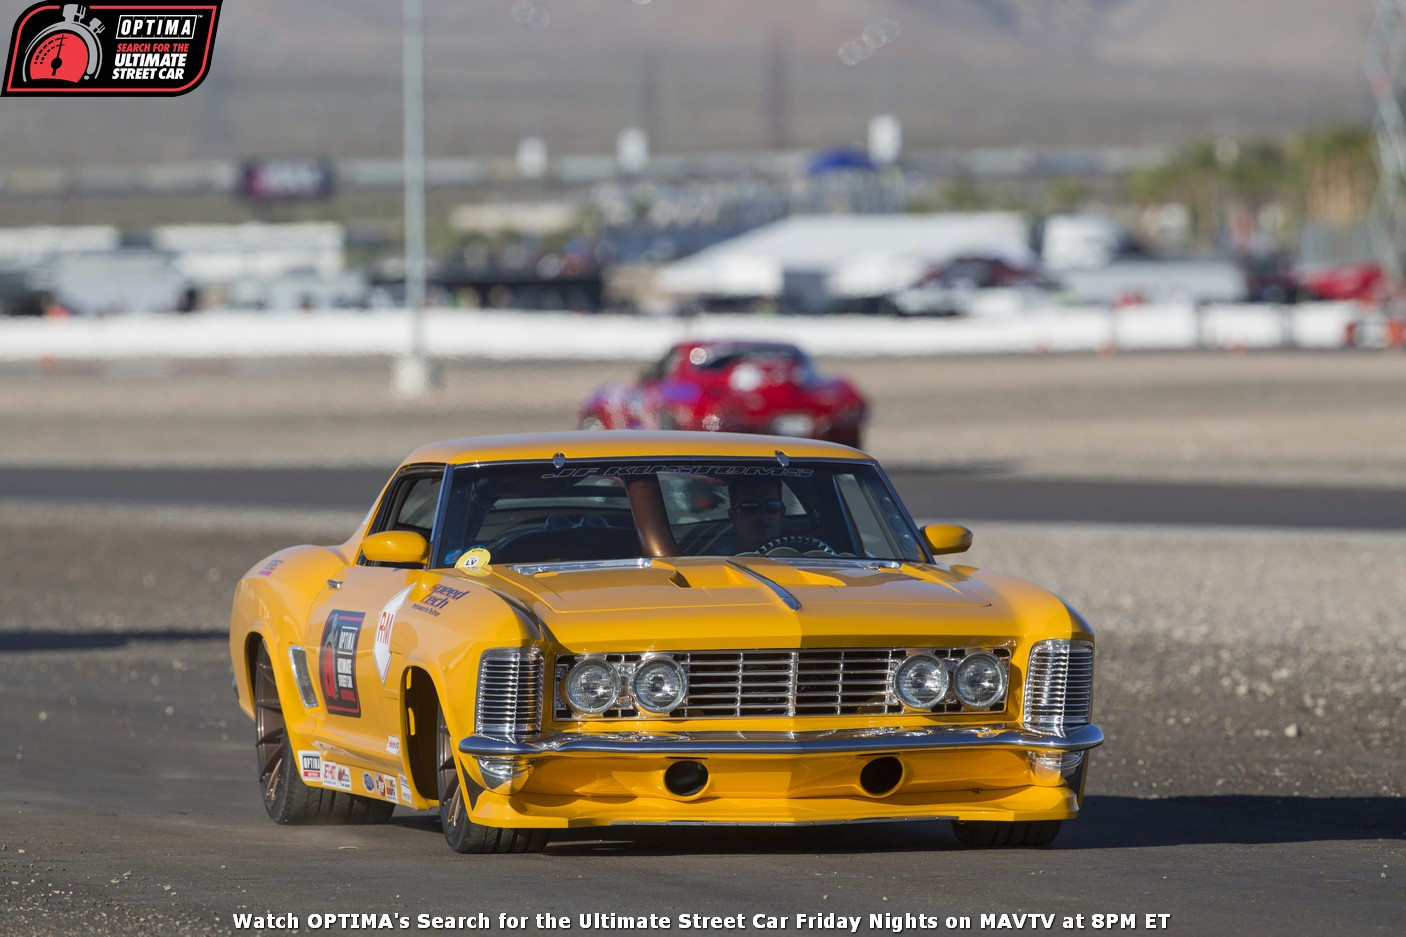 p-JF-Launier-1964-Buick-Riviera-OPTIMA-Ultimate-Street-Car-Invitational-2014-BFGoodrich-Hot-Lap-Challenge_268.jpg